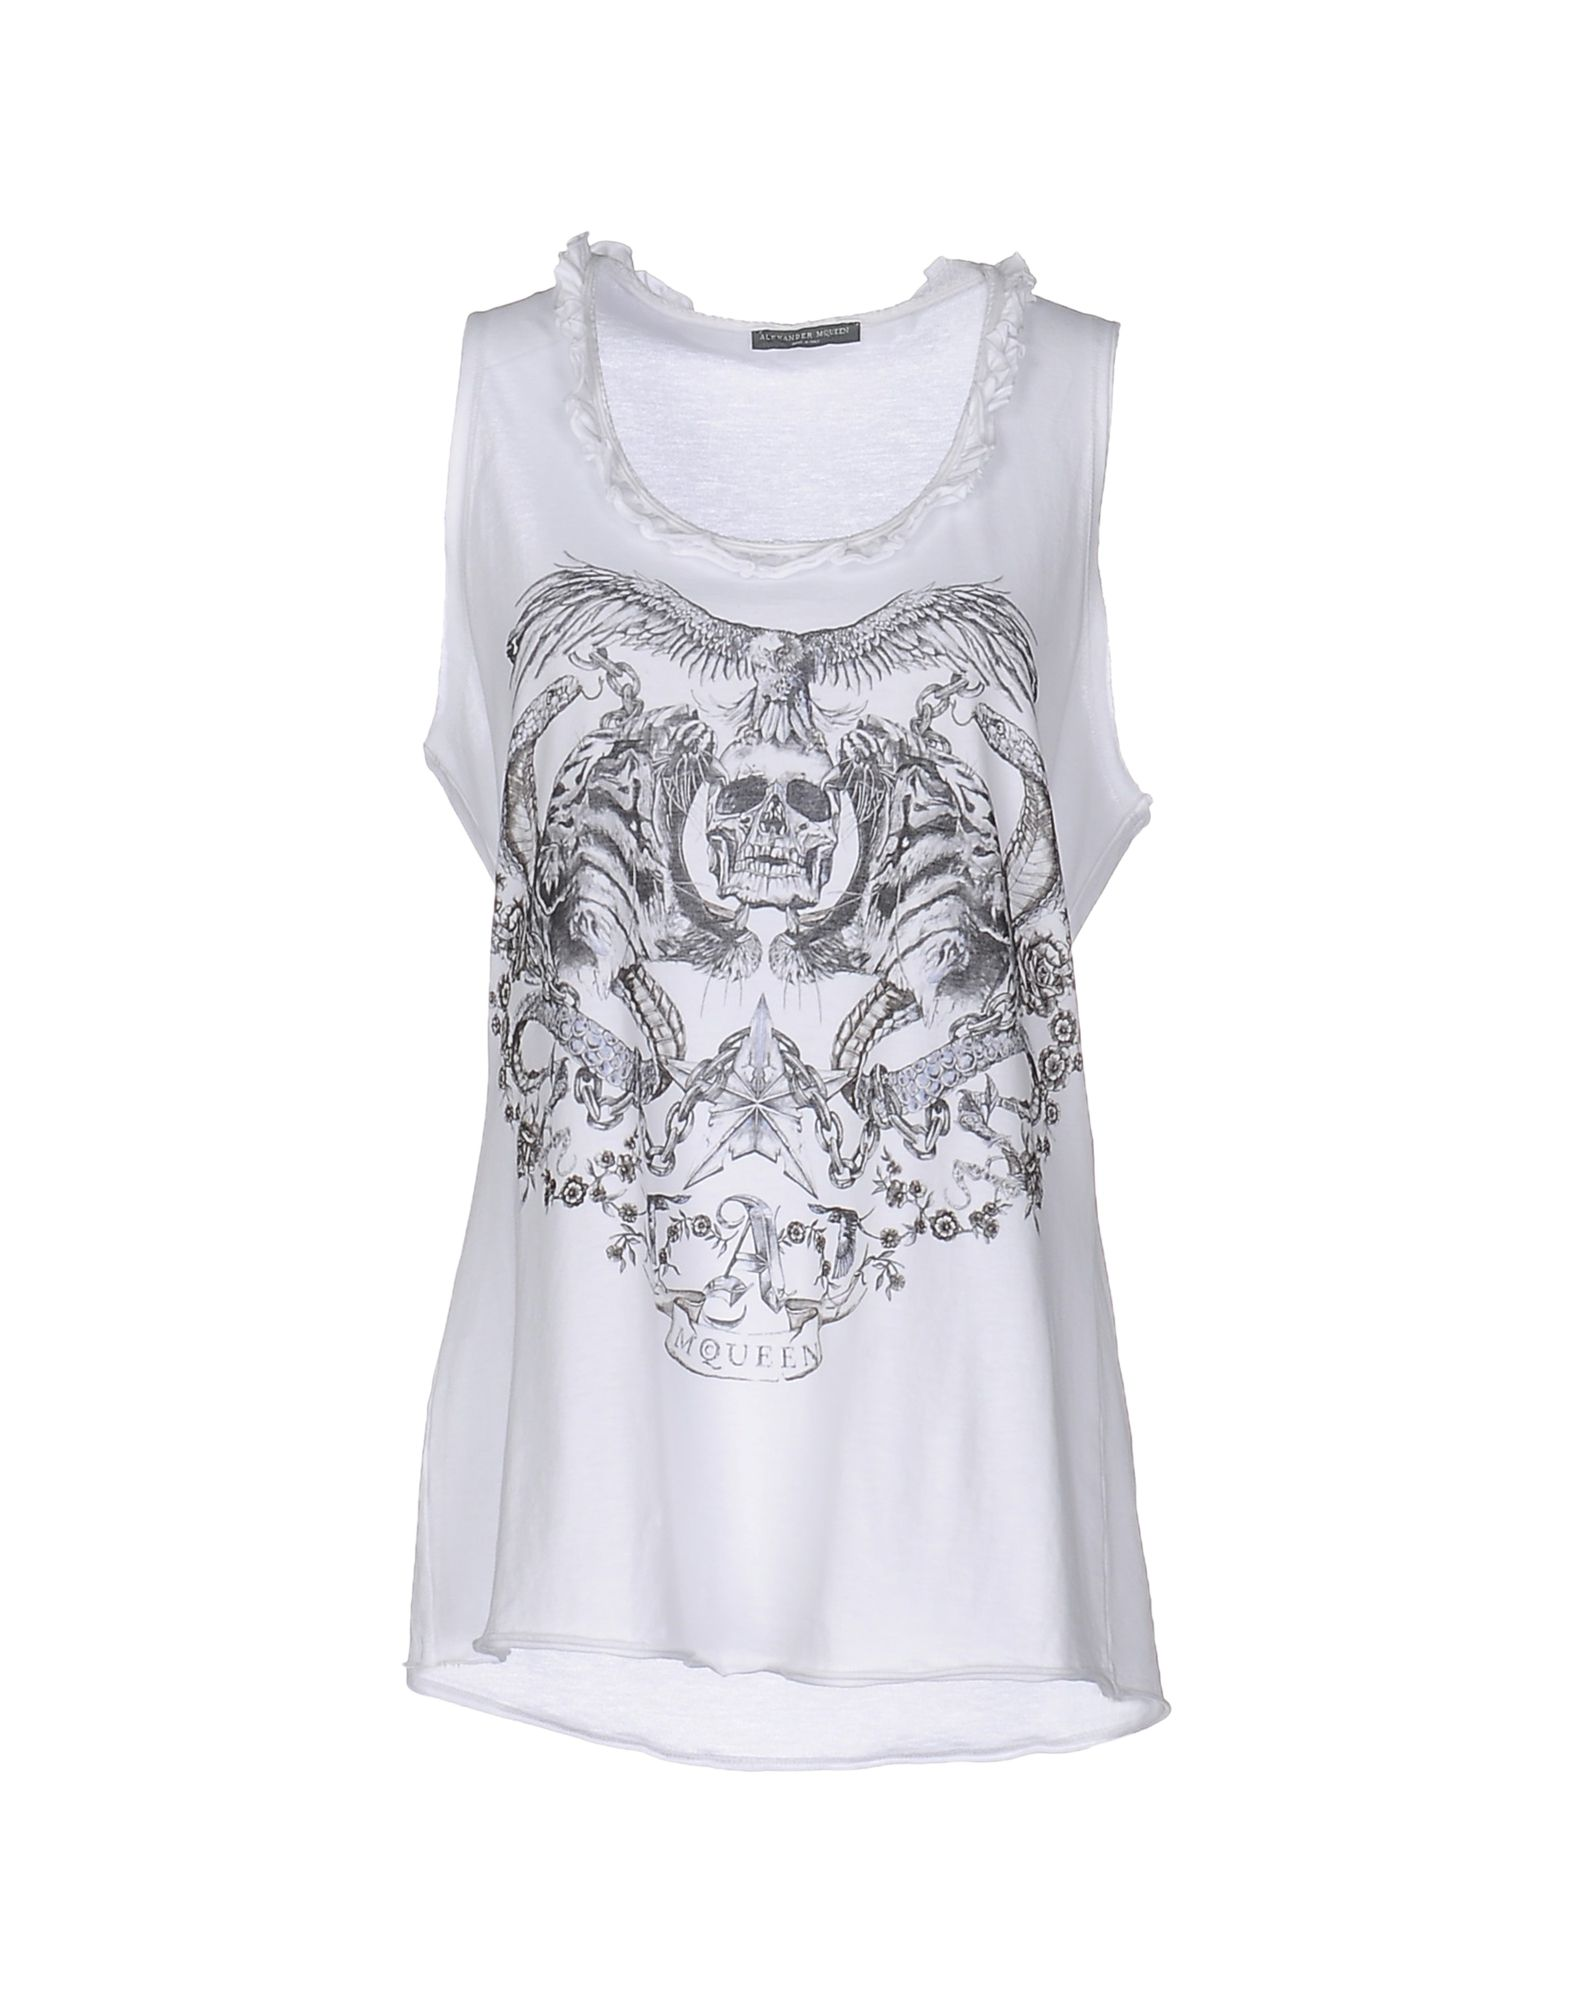 ALEXANDER MCQUEEN Tank tops. jersey, solid color, round collar, sleeveless, print, logo, no pockets. 100% Cotton